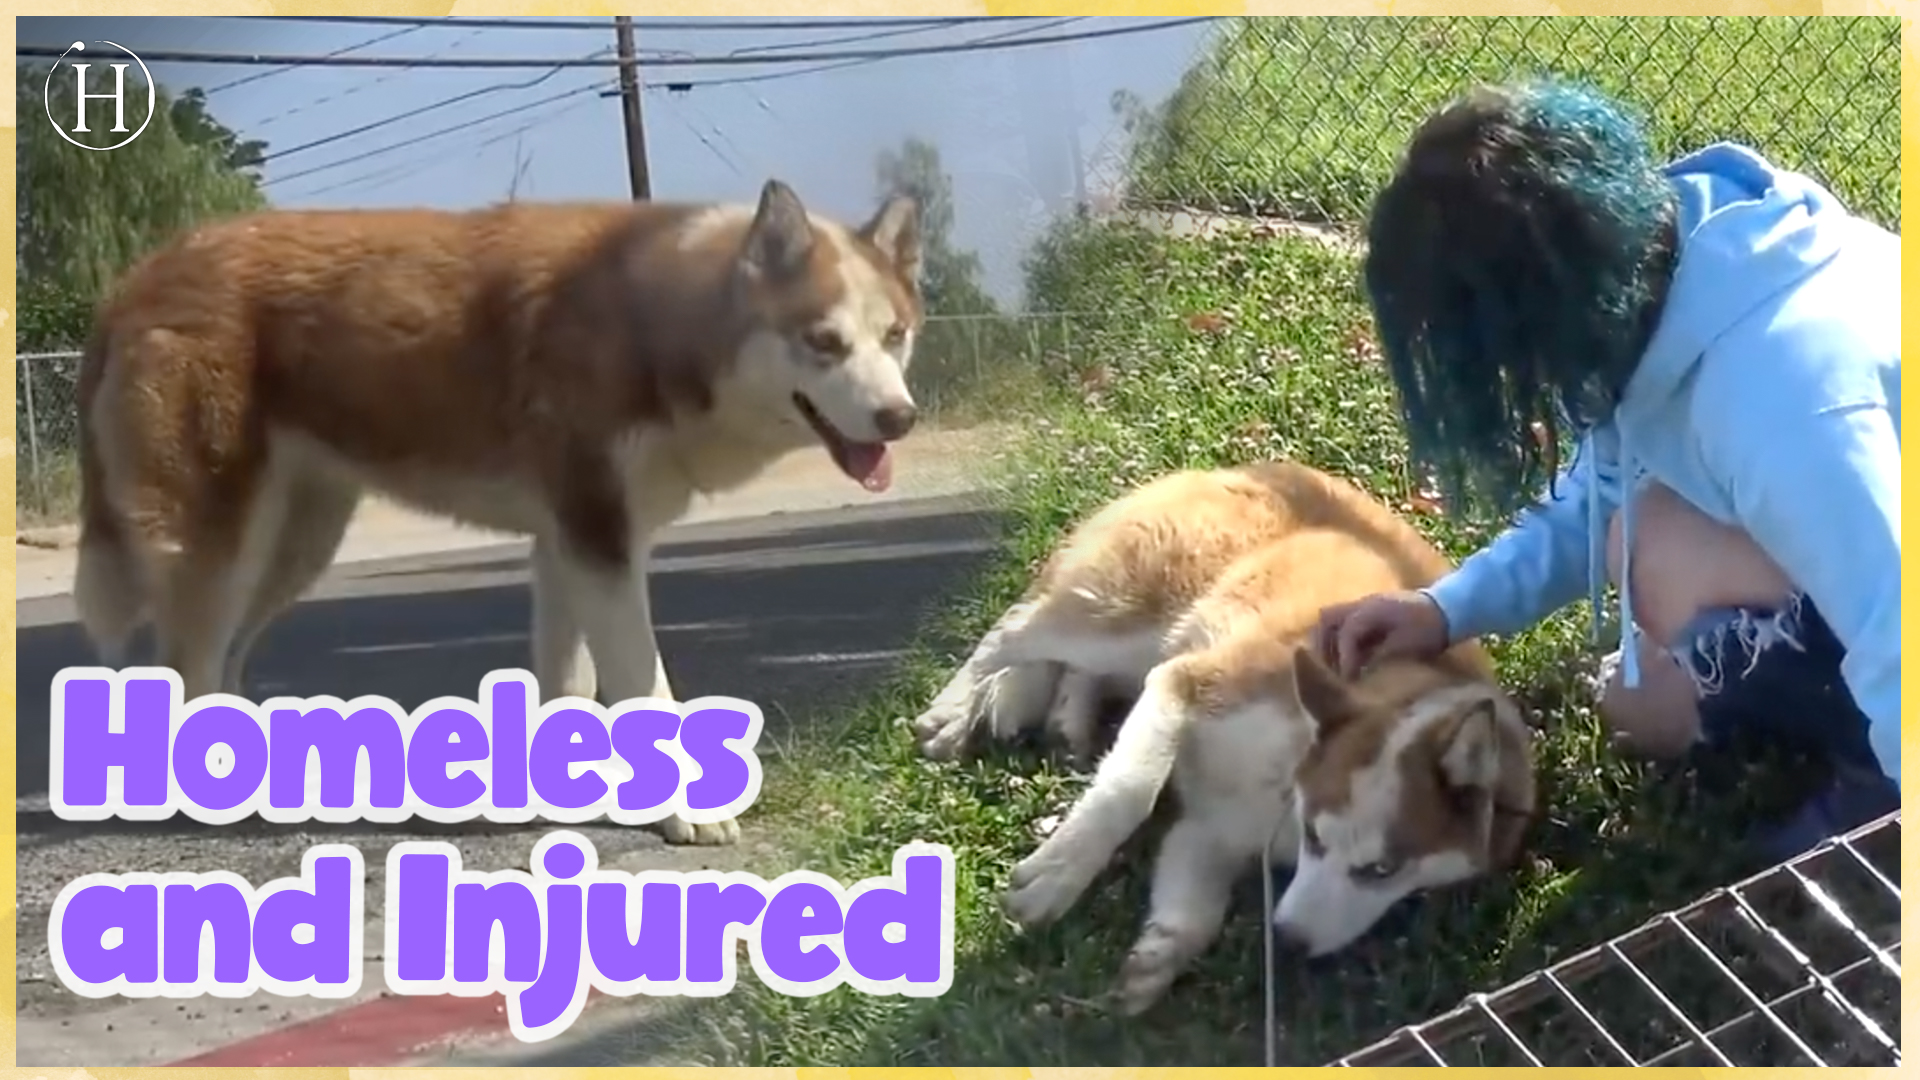 Homeless, Injured, Scared To Trust Humans... | Humanity Life